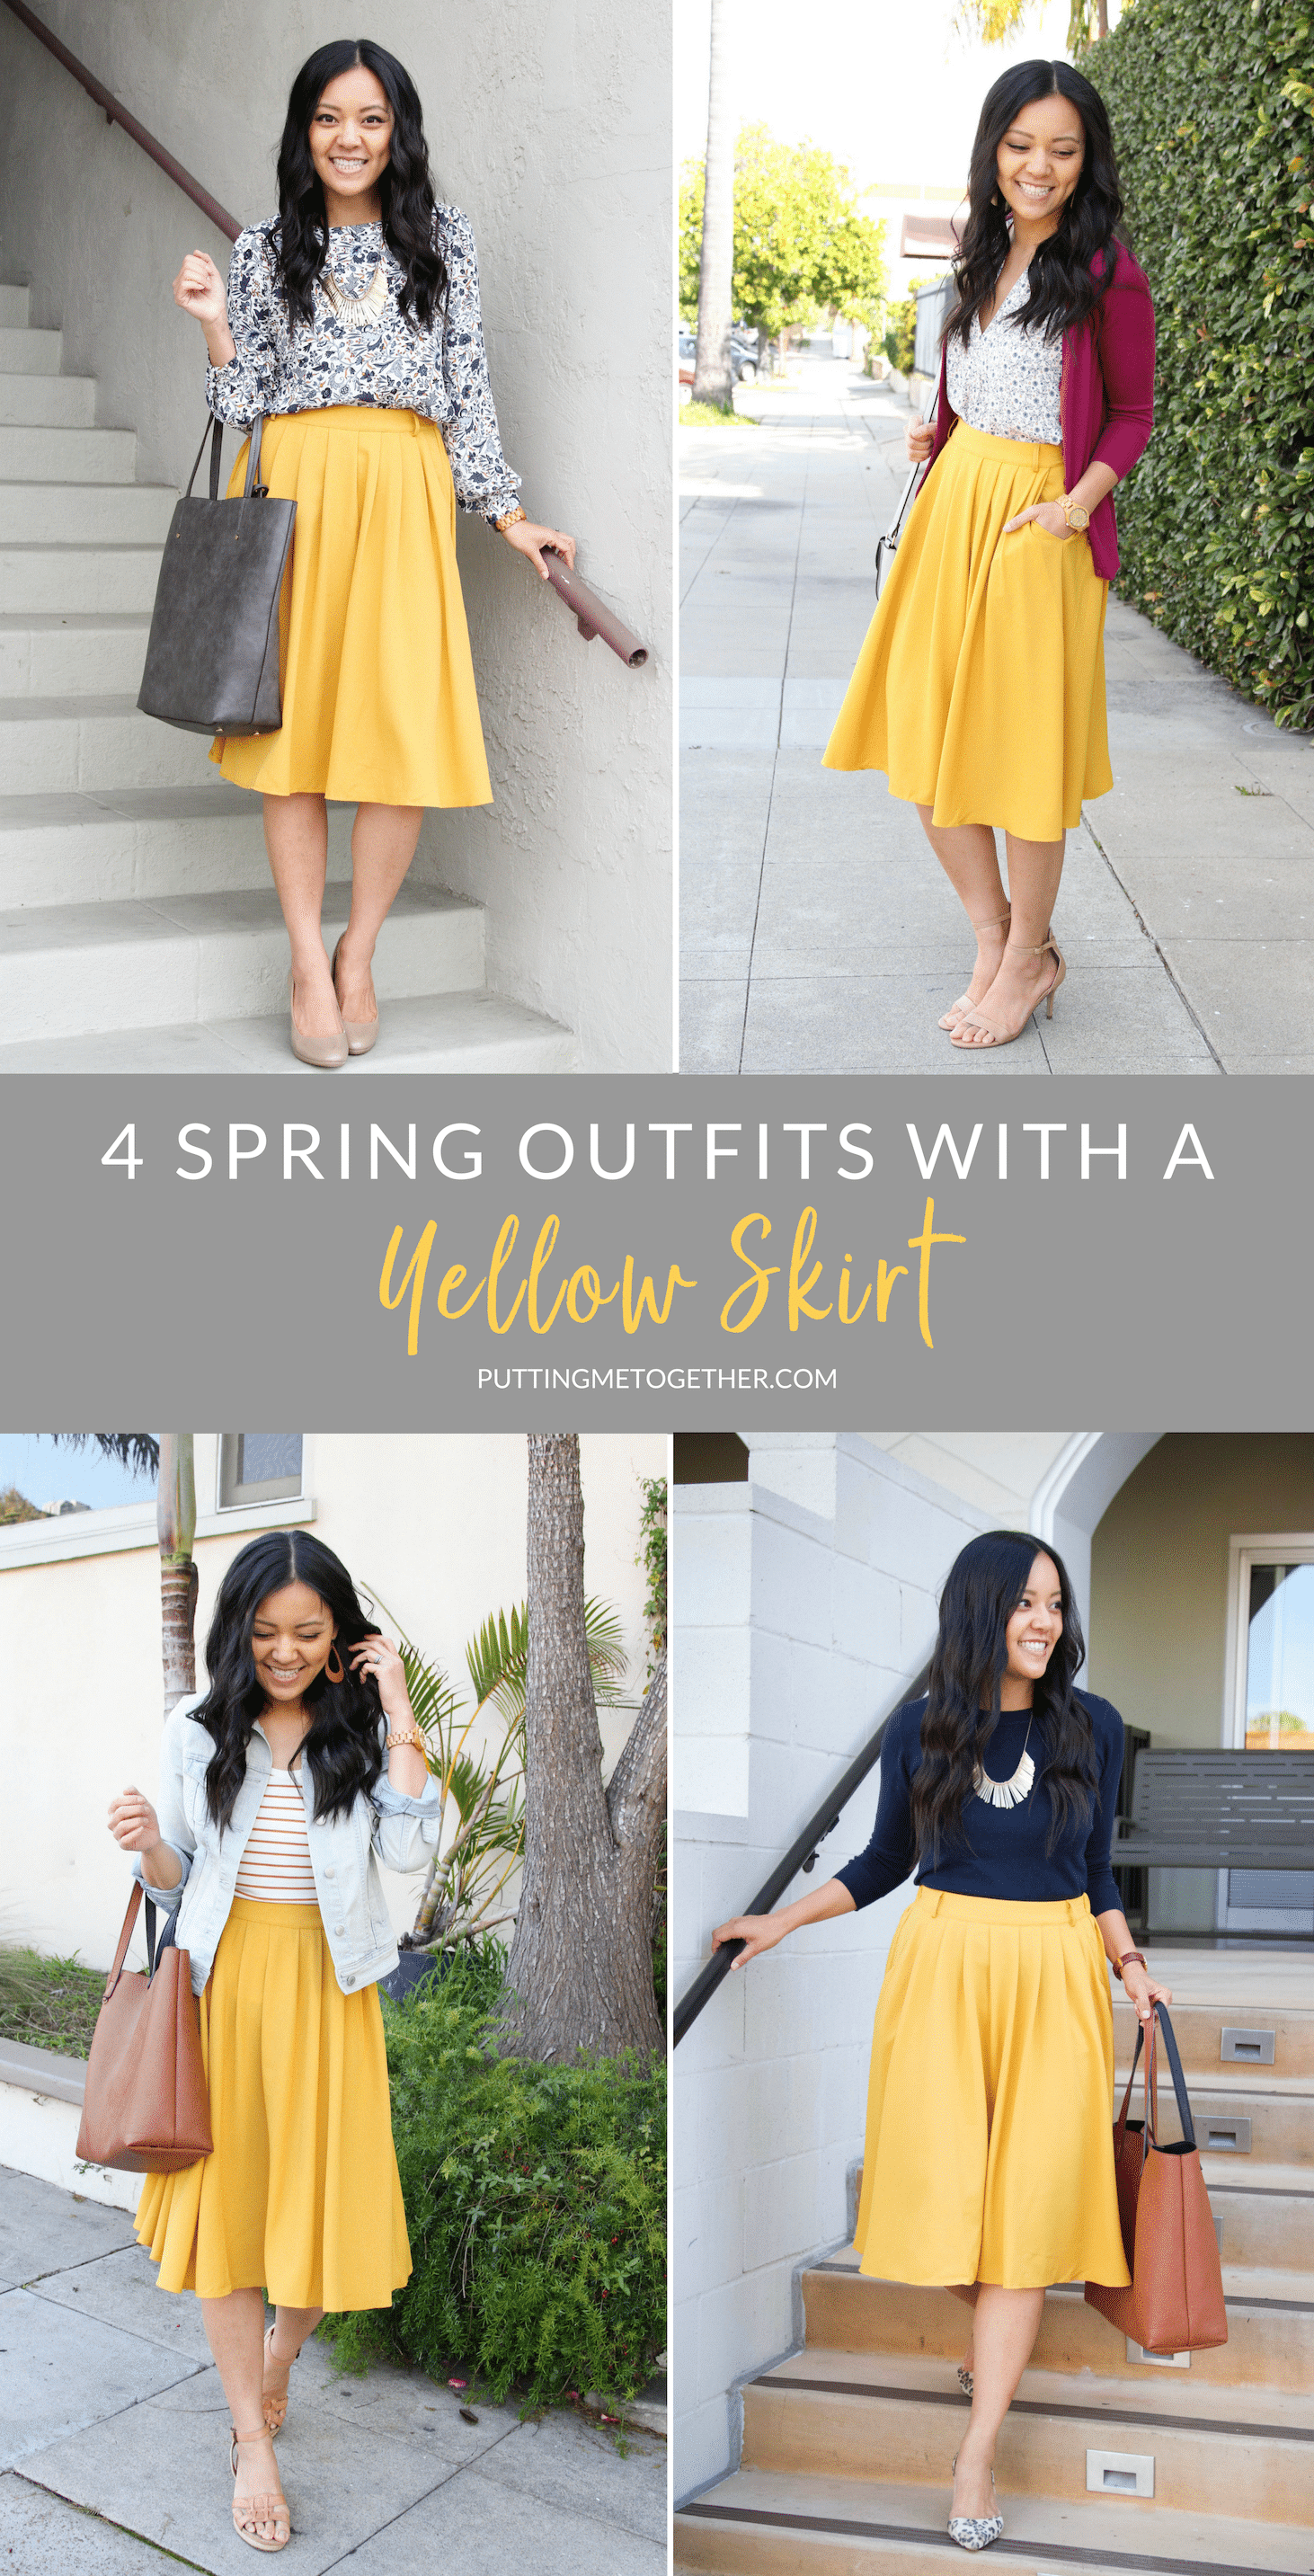 Styling a Yellow Skirt for Spring